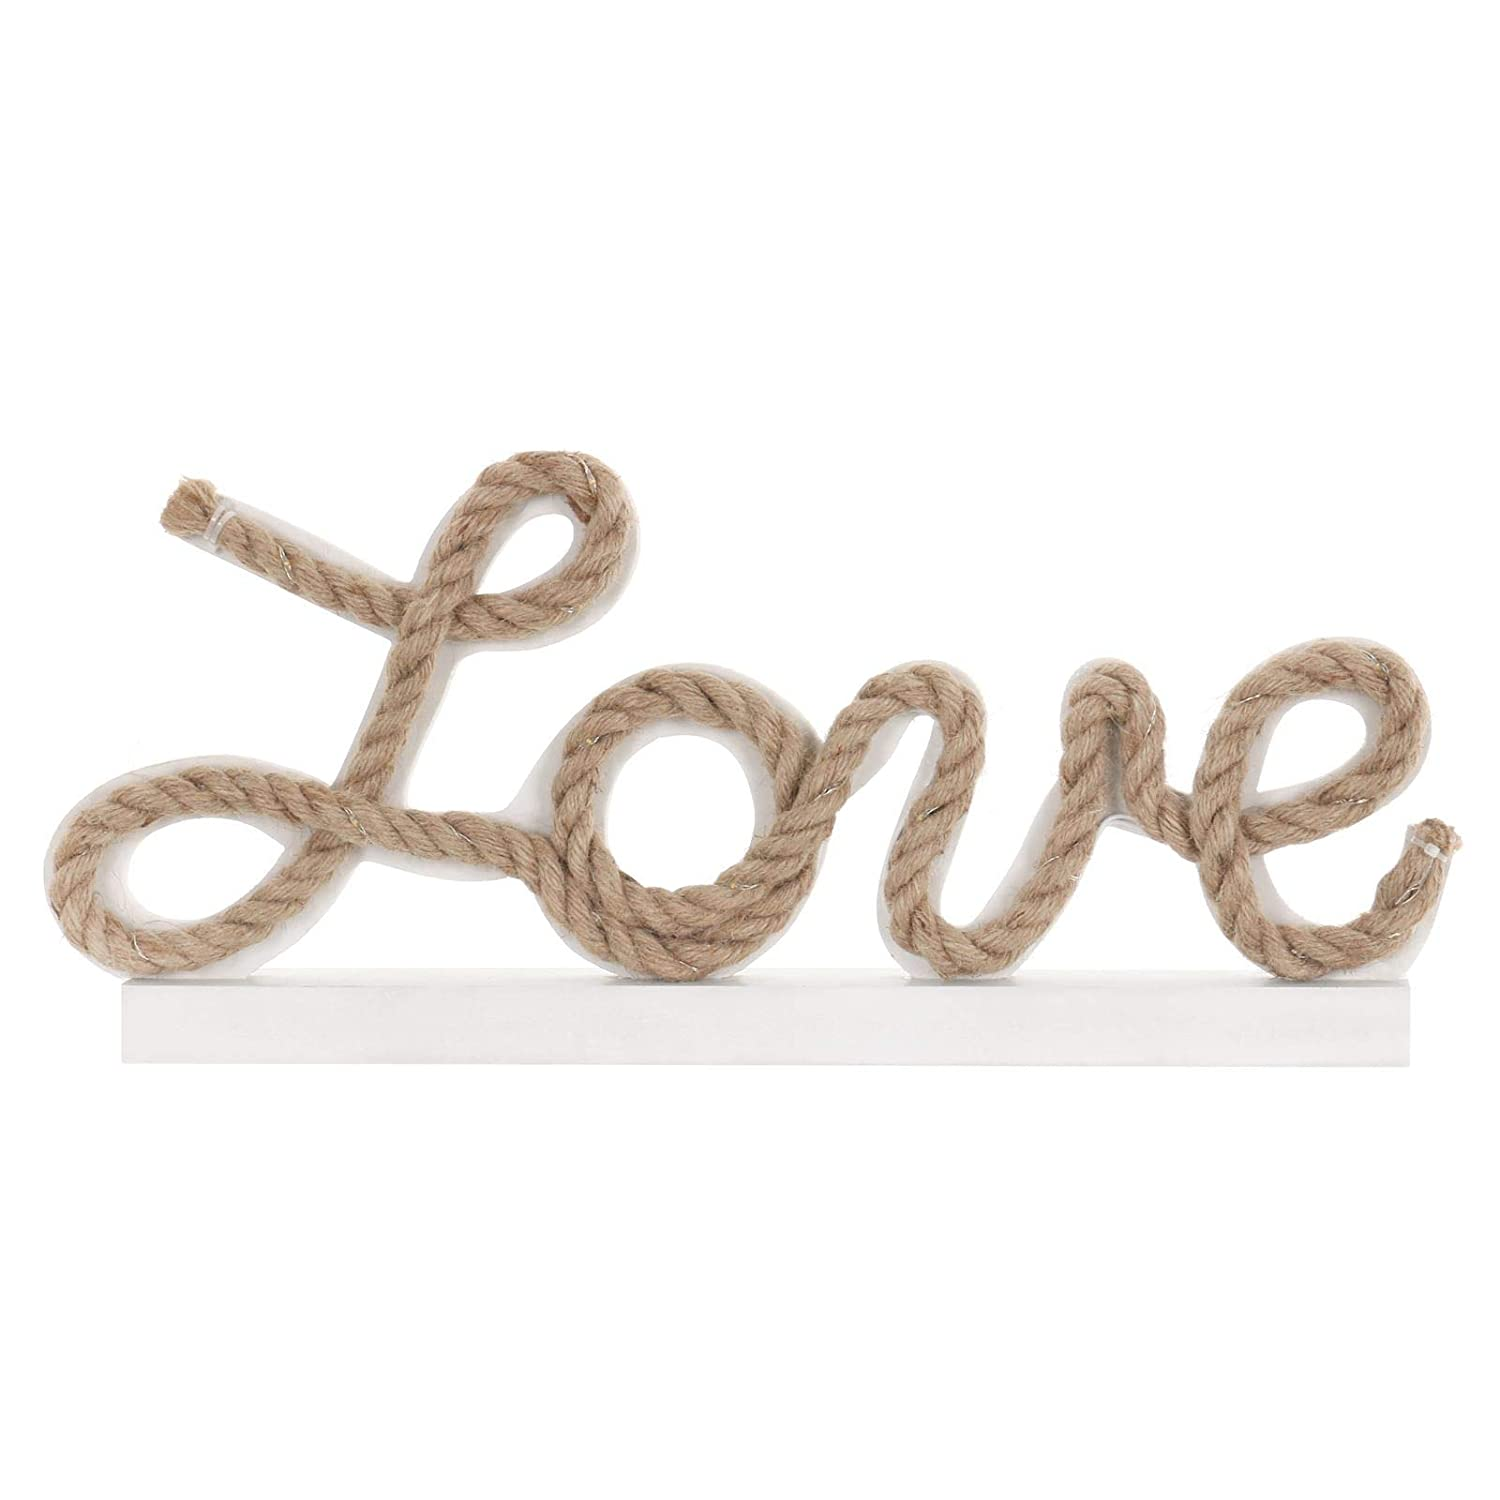 Mr Crimbo Decorative Love Light Up White Wooden Freestanding Sign With Rope And 35 Warm White LED Lights